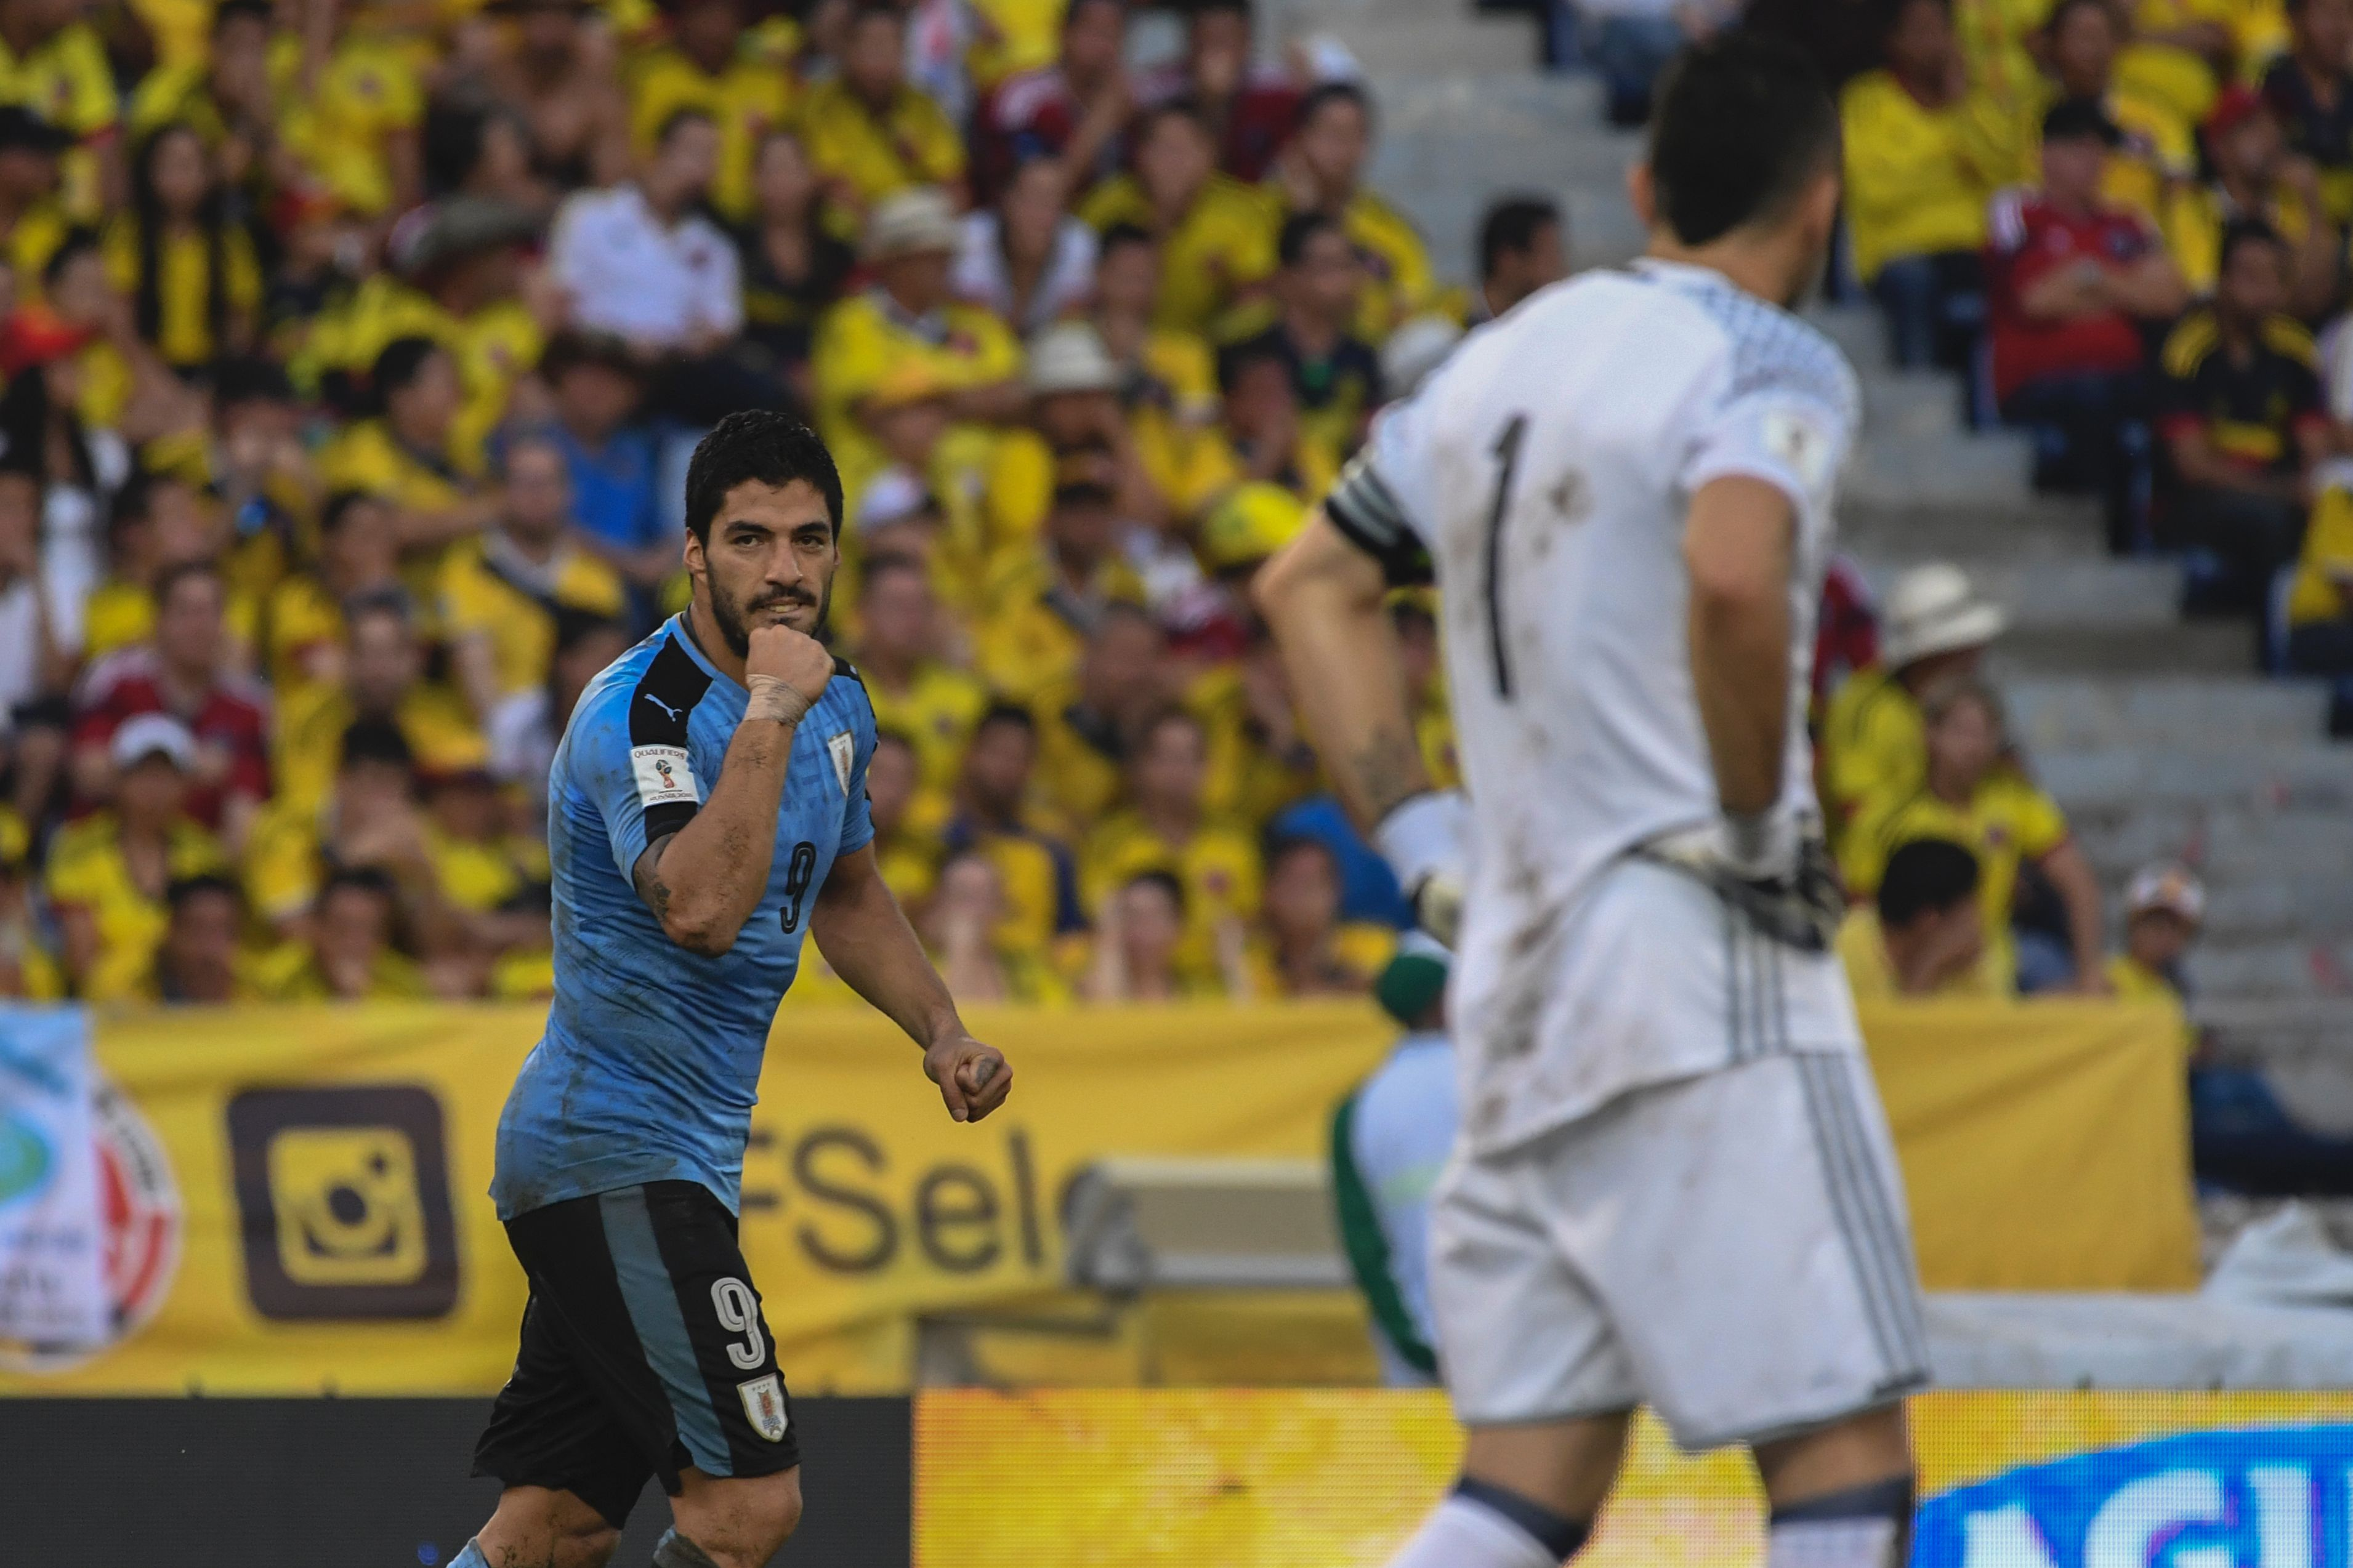 Uruguay's Luis Suarez celebrates after scoring against Colombia during their Russia 2018 World Cup football qualifier match in Barranquilla, Colombia, on October 11, 2016. / AFP / Luis Acosta (Photo credit should read LUIS ACOSTA/AFP/Getty Images)